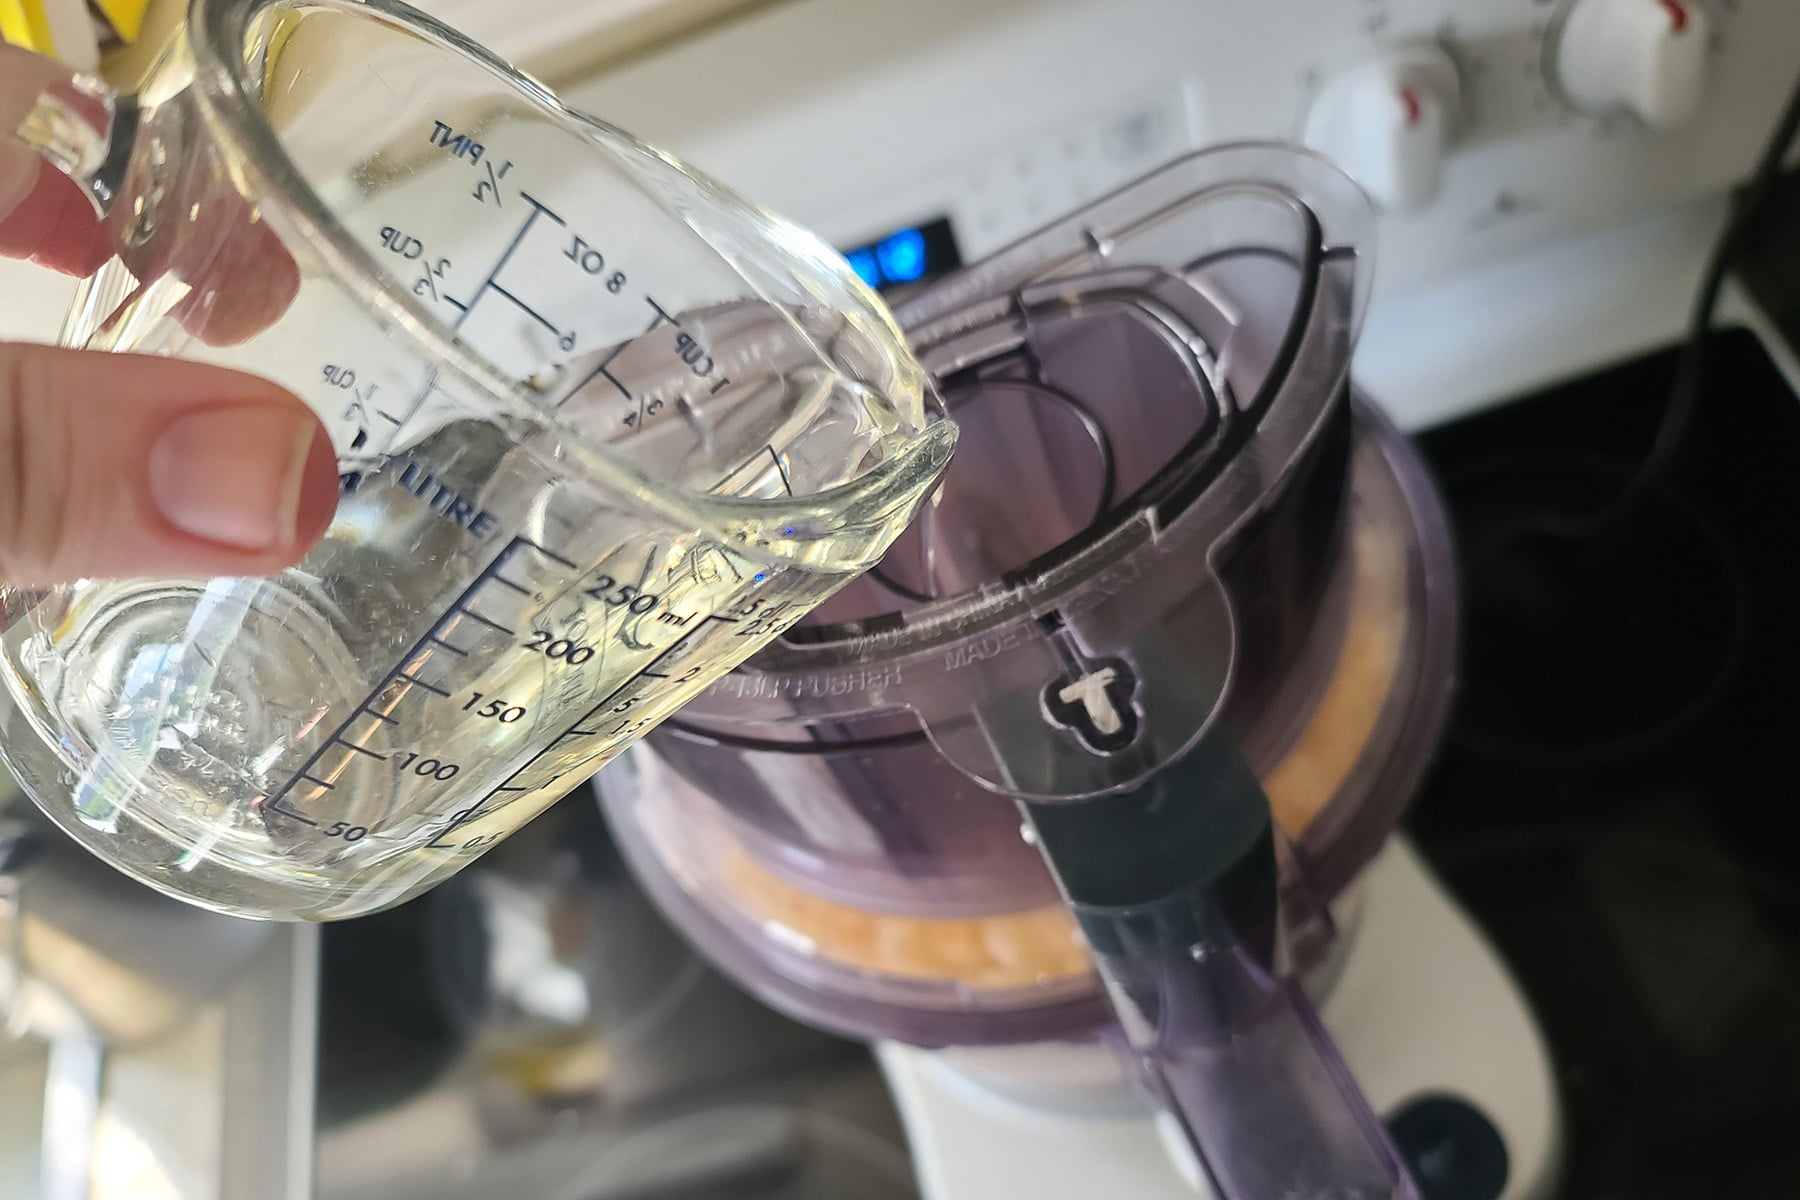 White wine being poured into the food processor.